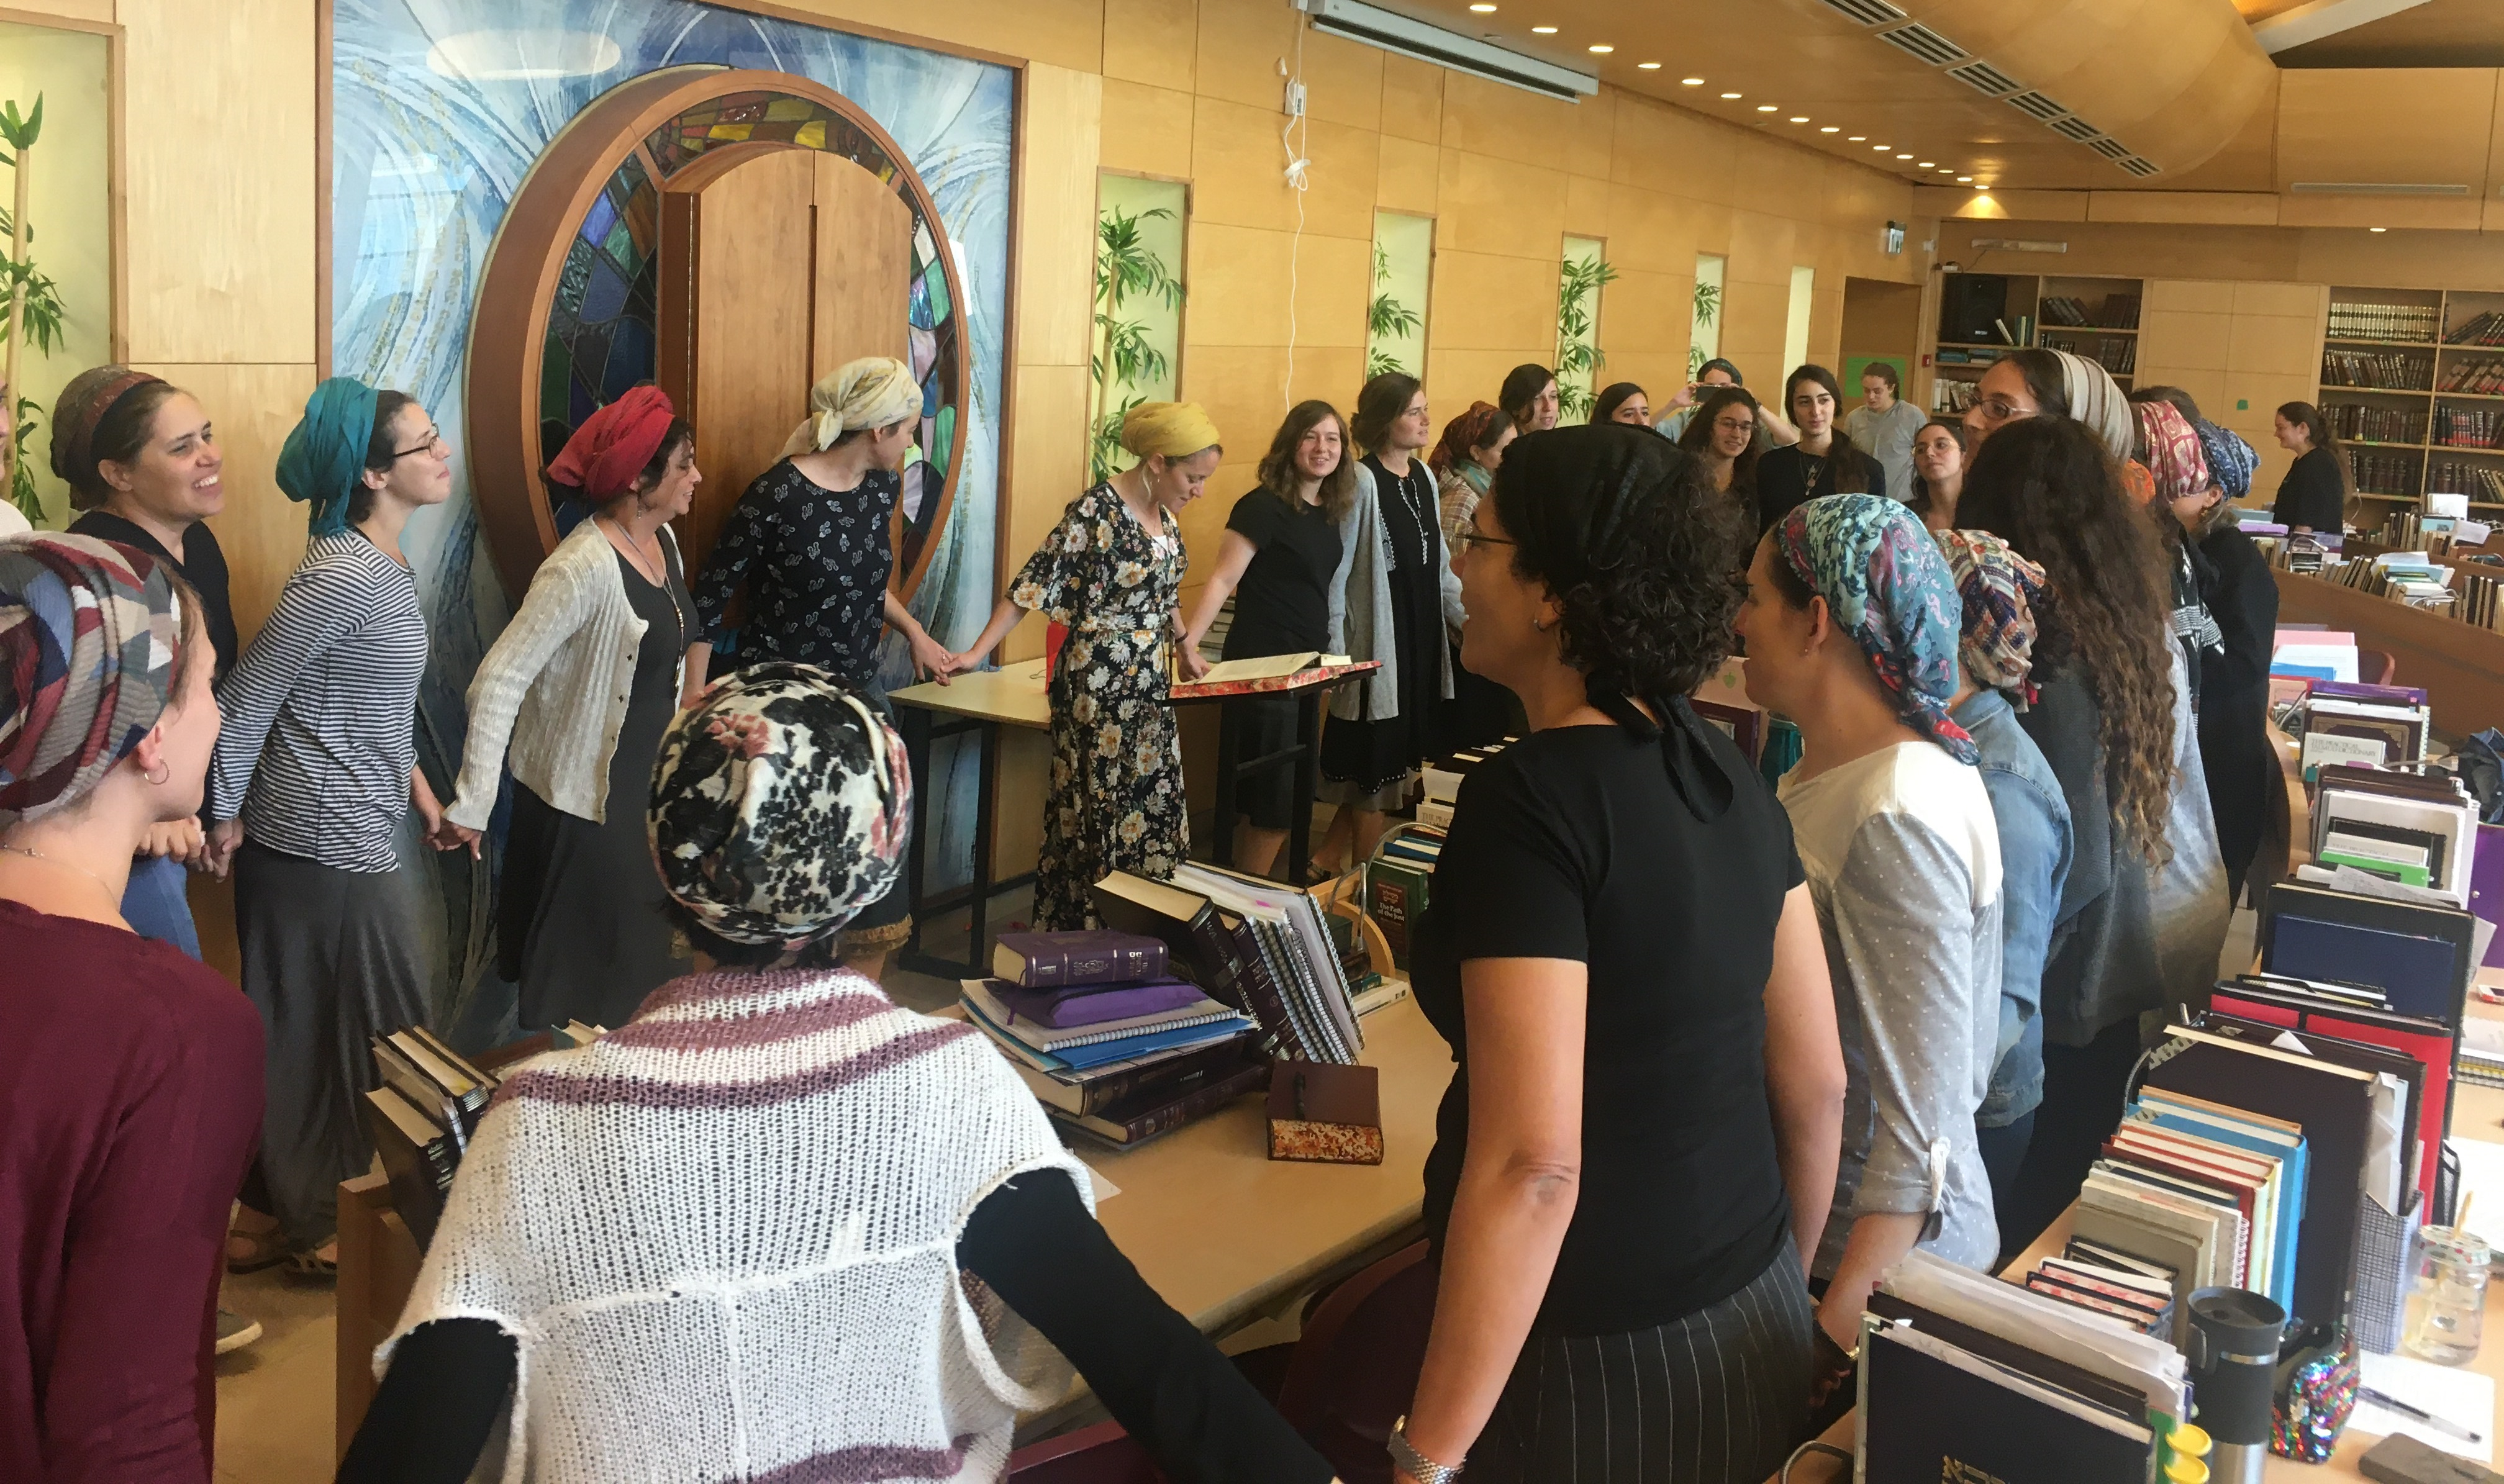 WOmen dancing in the beit midrash